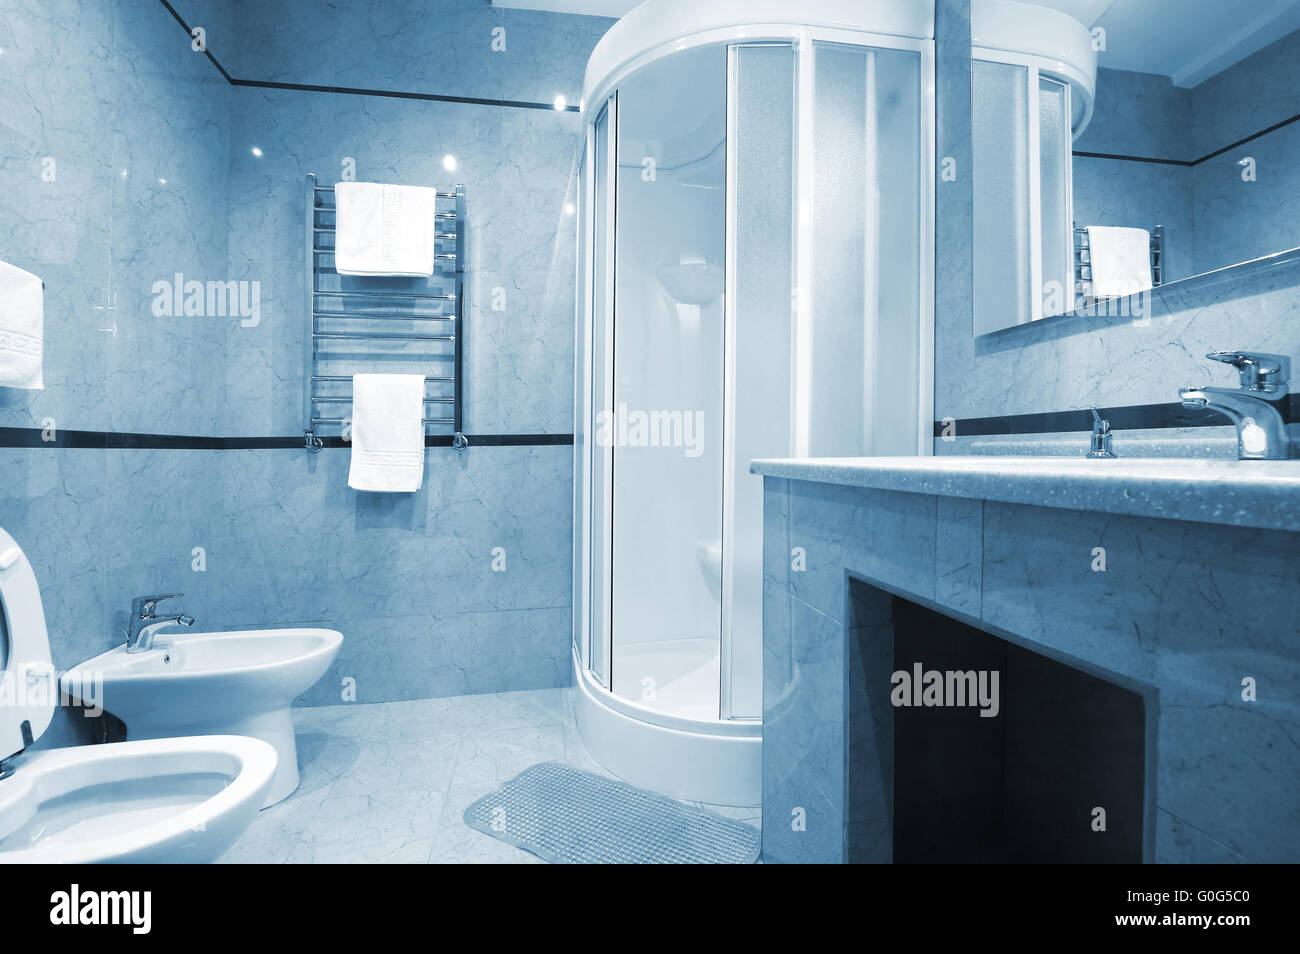 Marble Shower Cubicle Stock Photos & Marble Shower Cubicle Stock ...